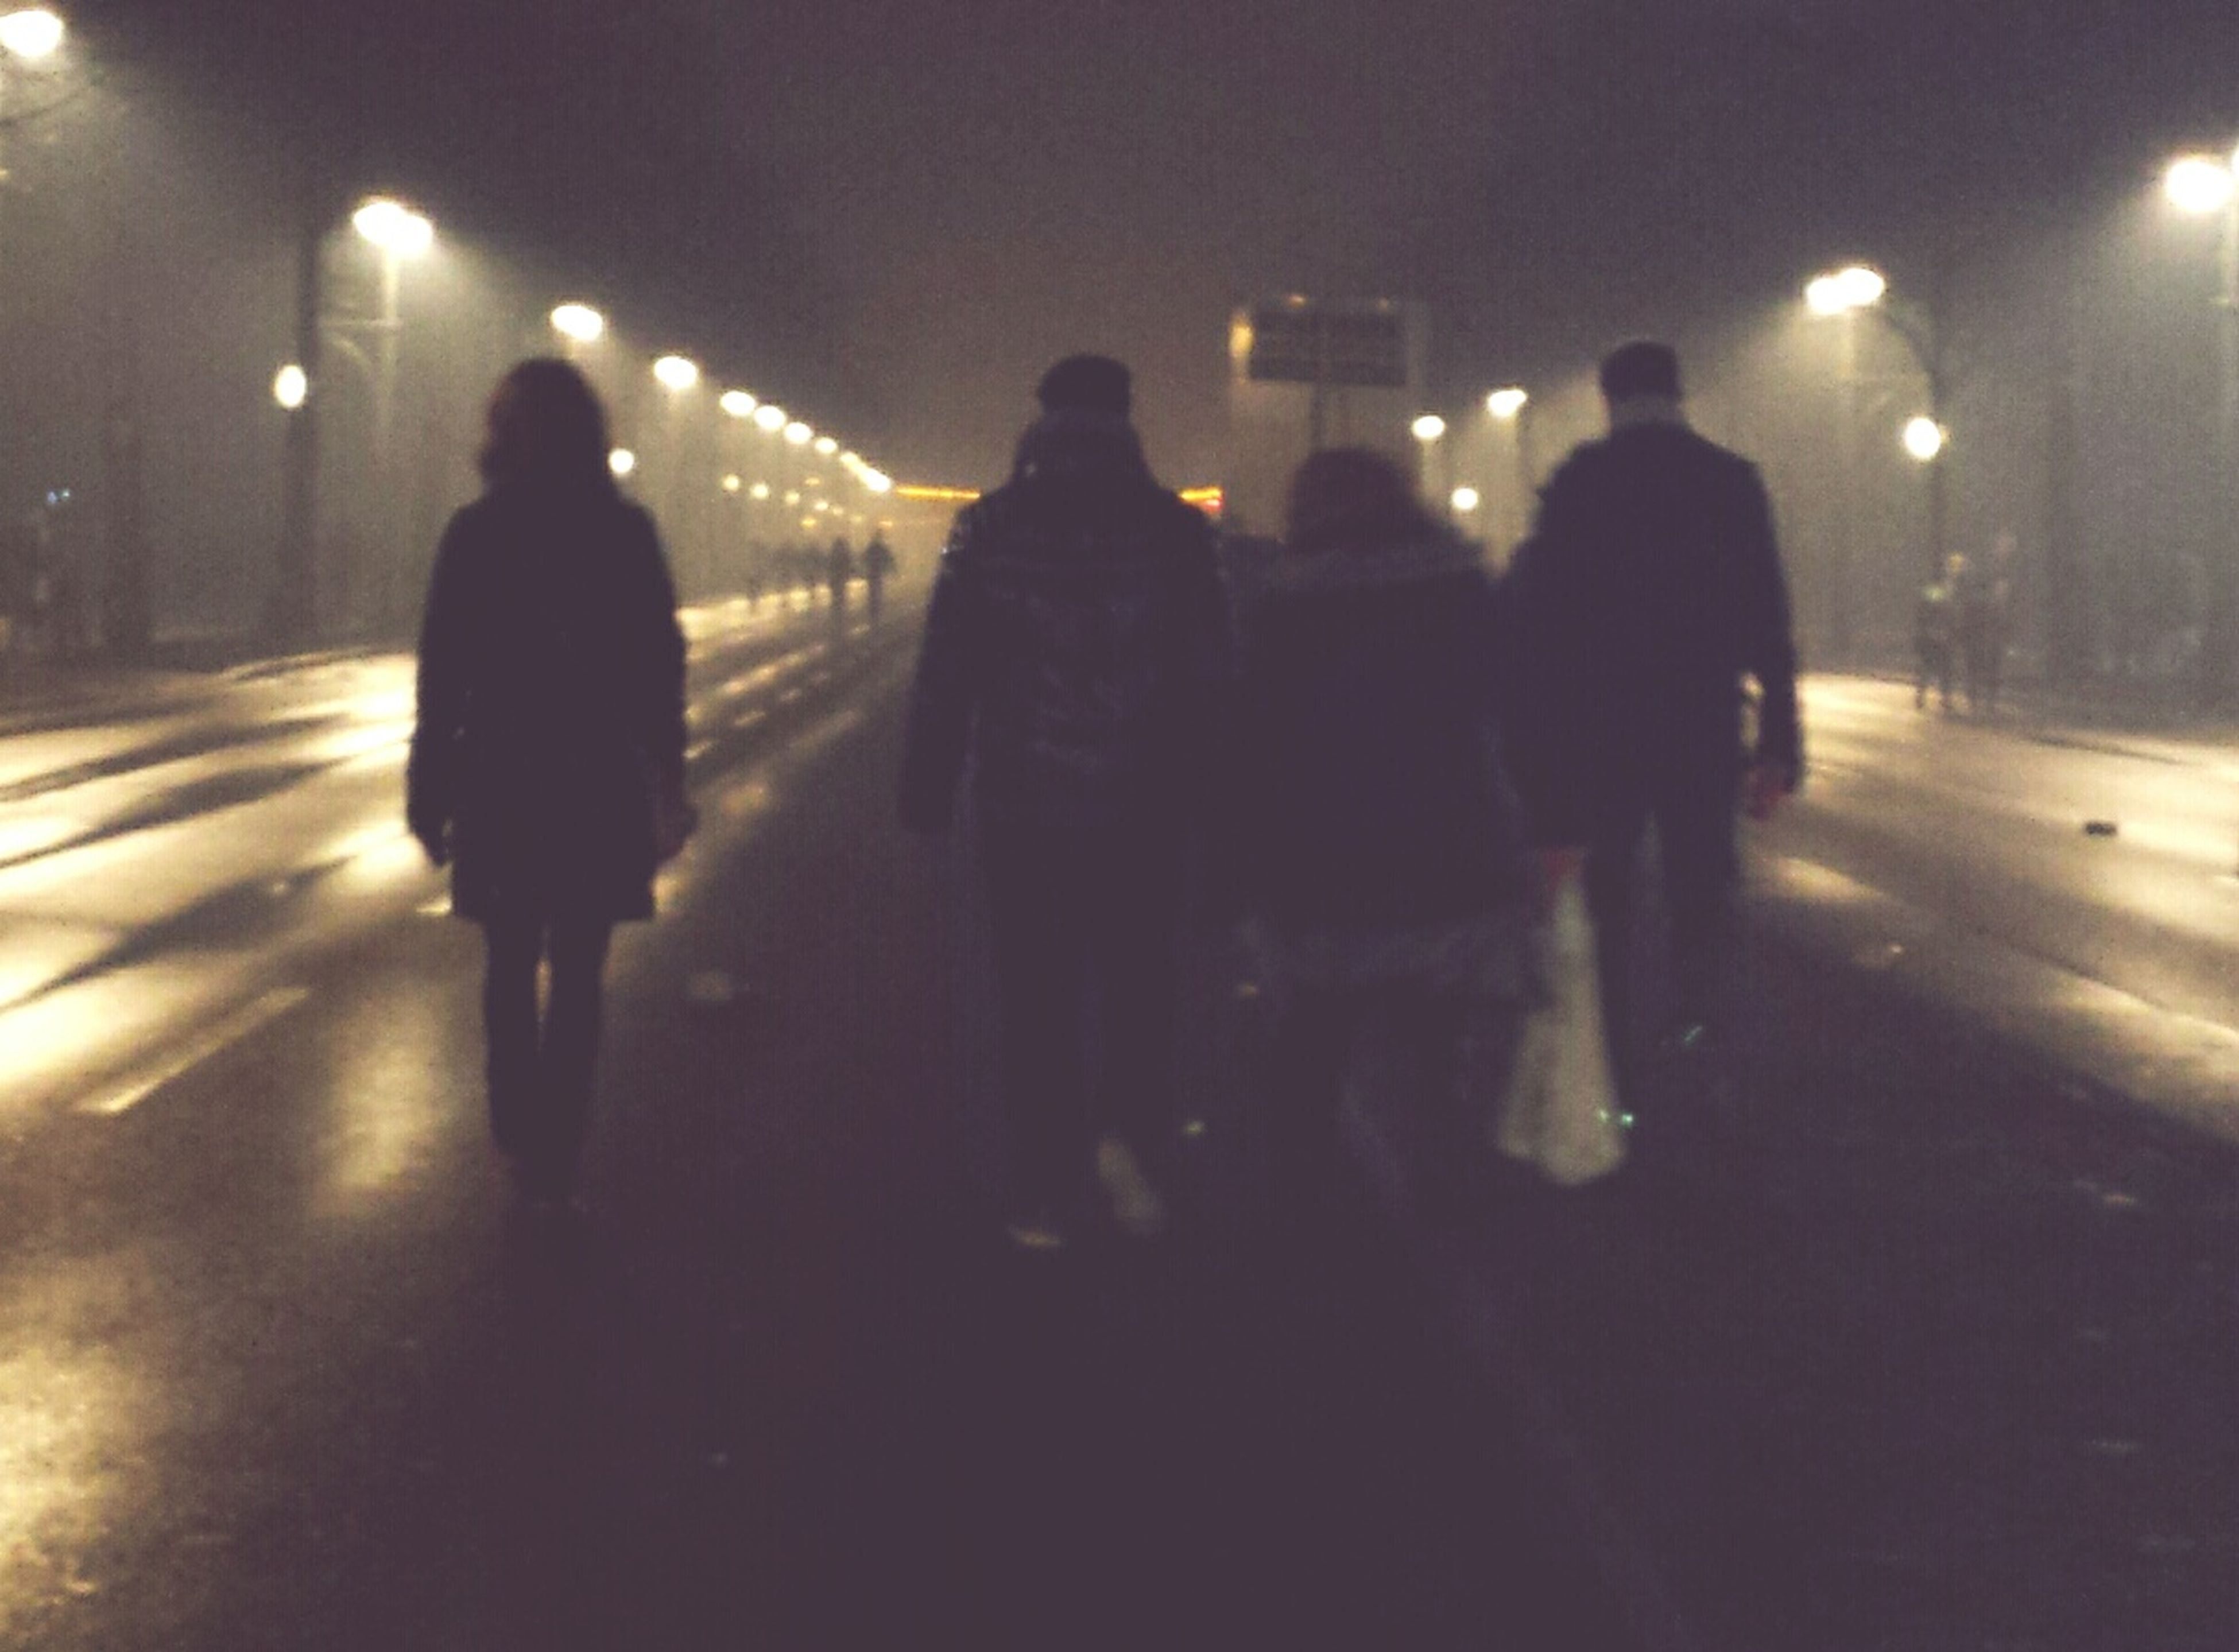 night, illuminated, men, lifestyles, walking, rear view, street, full length, togetherness, person, city, leisure activity, city life, silhouette, road, standing, group of people, lighting equipment